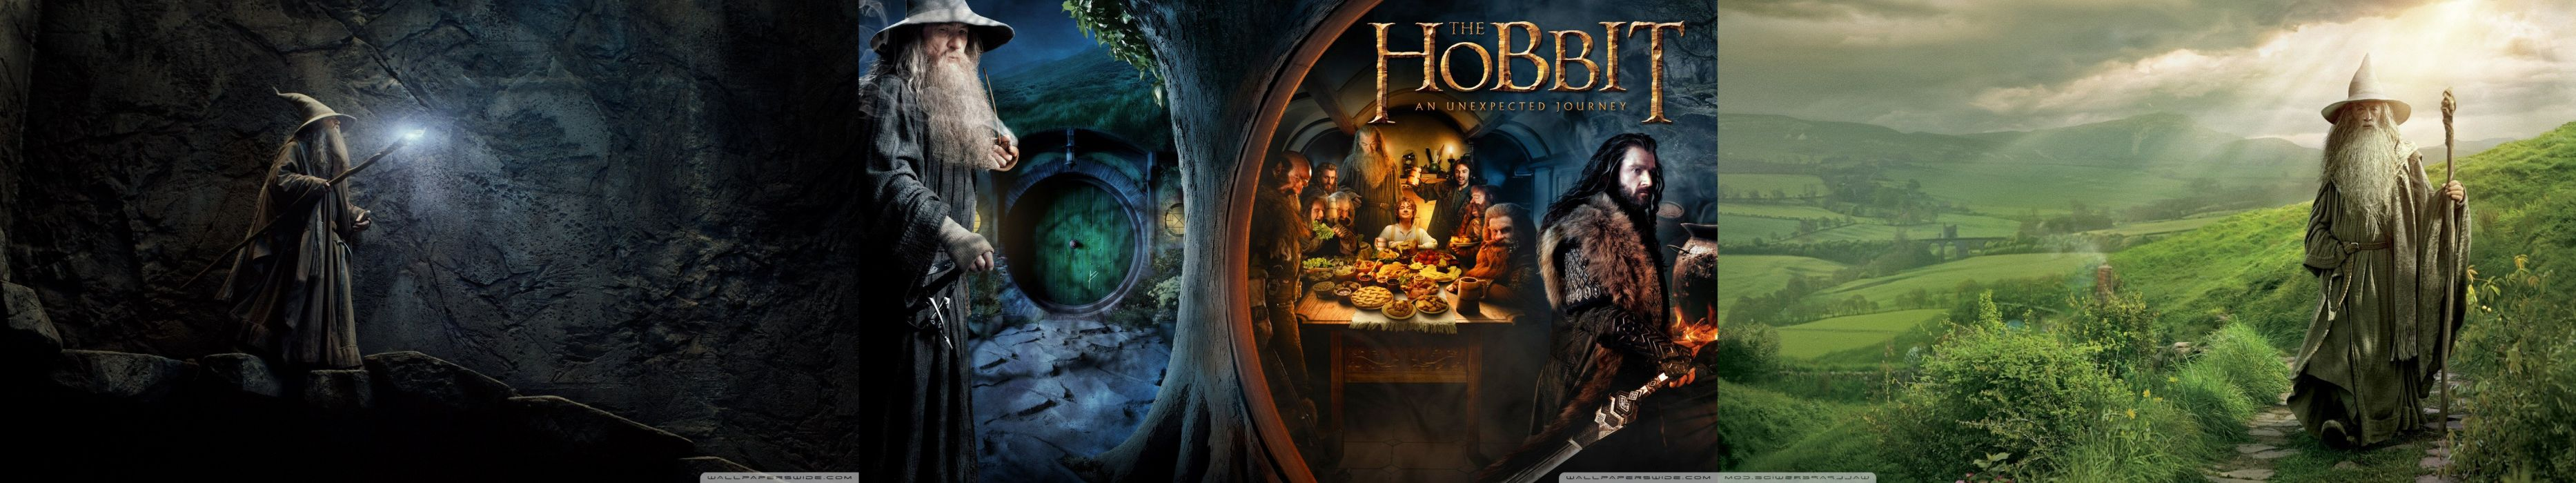 Triple Monitor Multiple Screen Multi Hobbit Lord Of The Ring